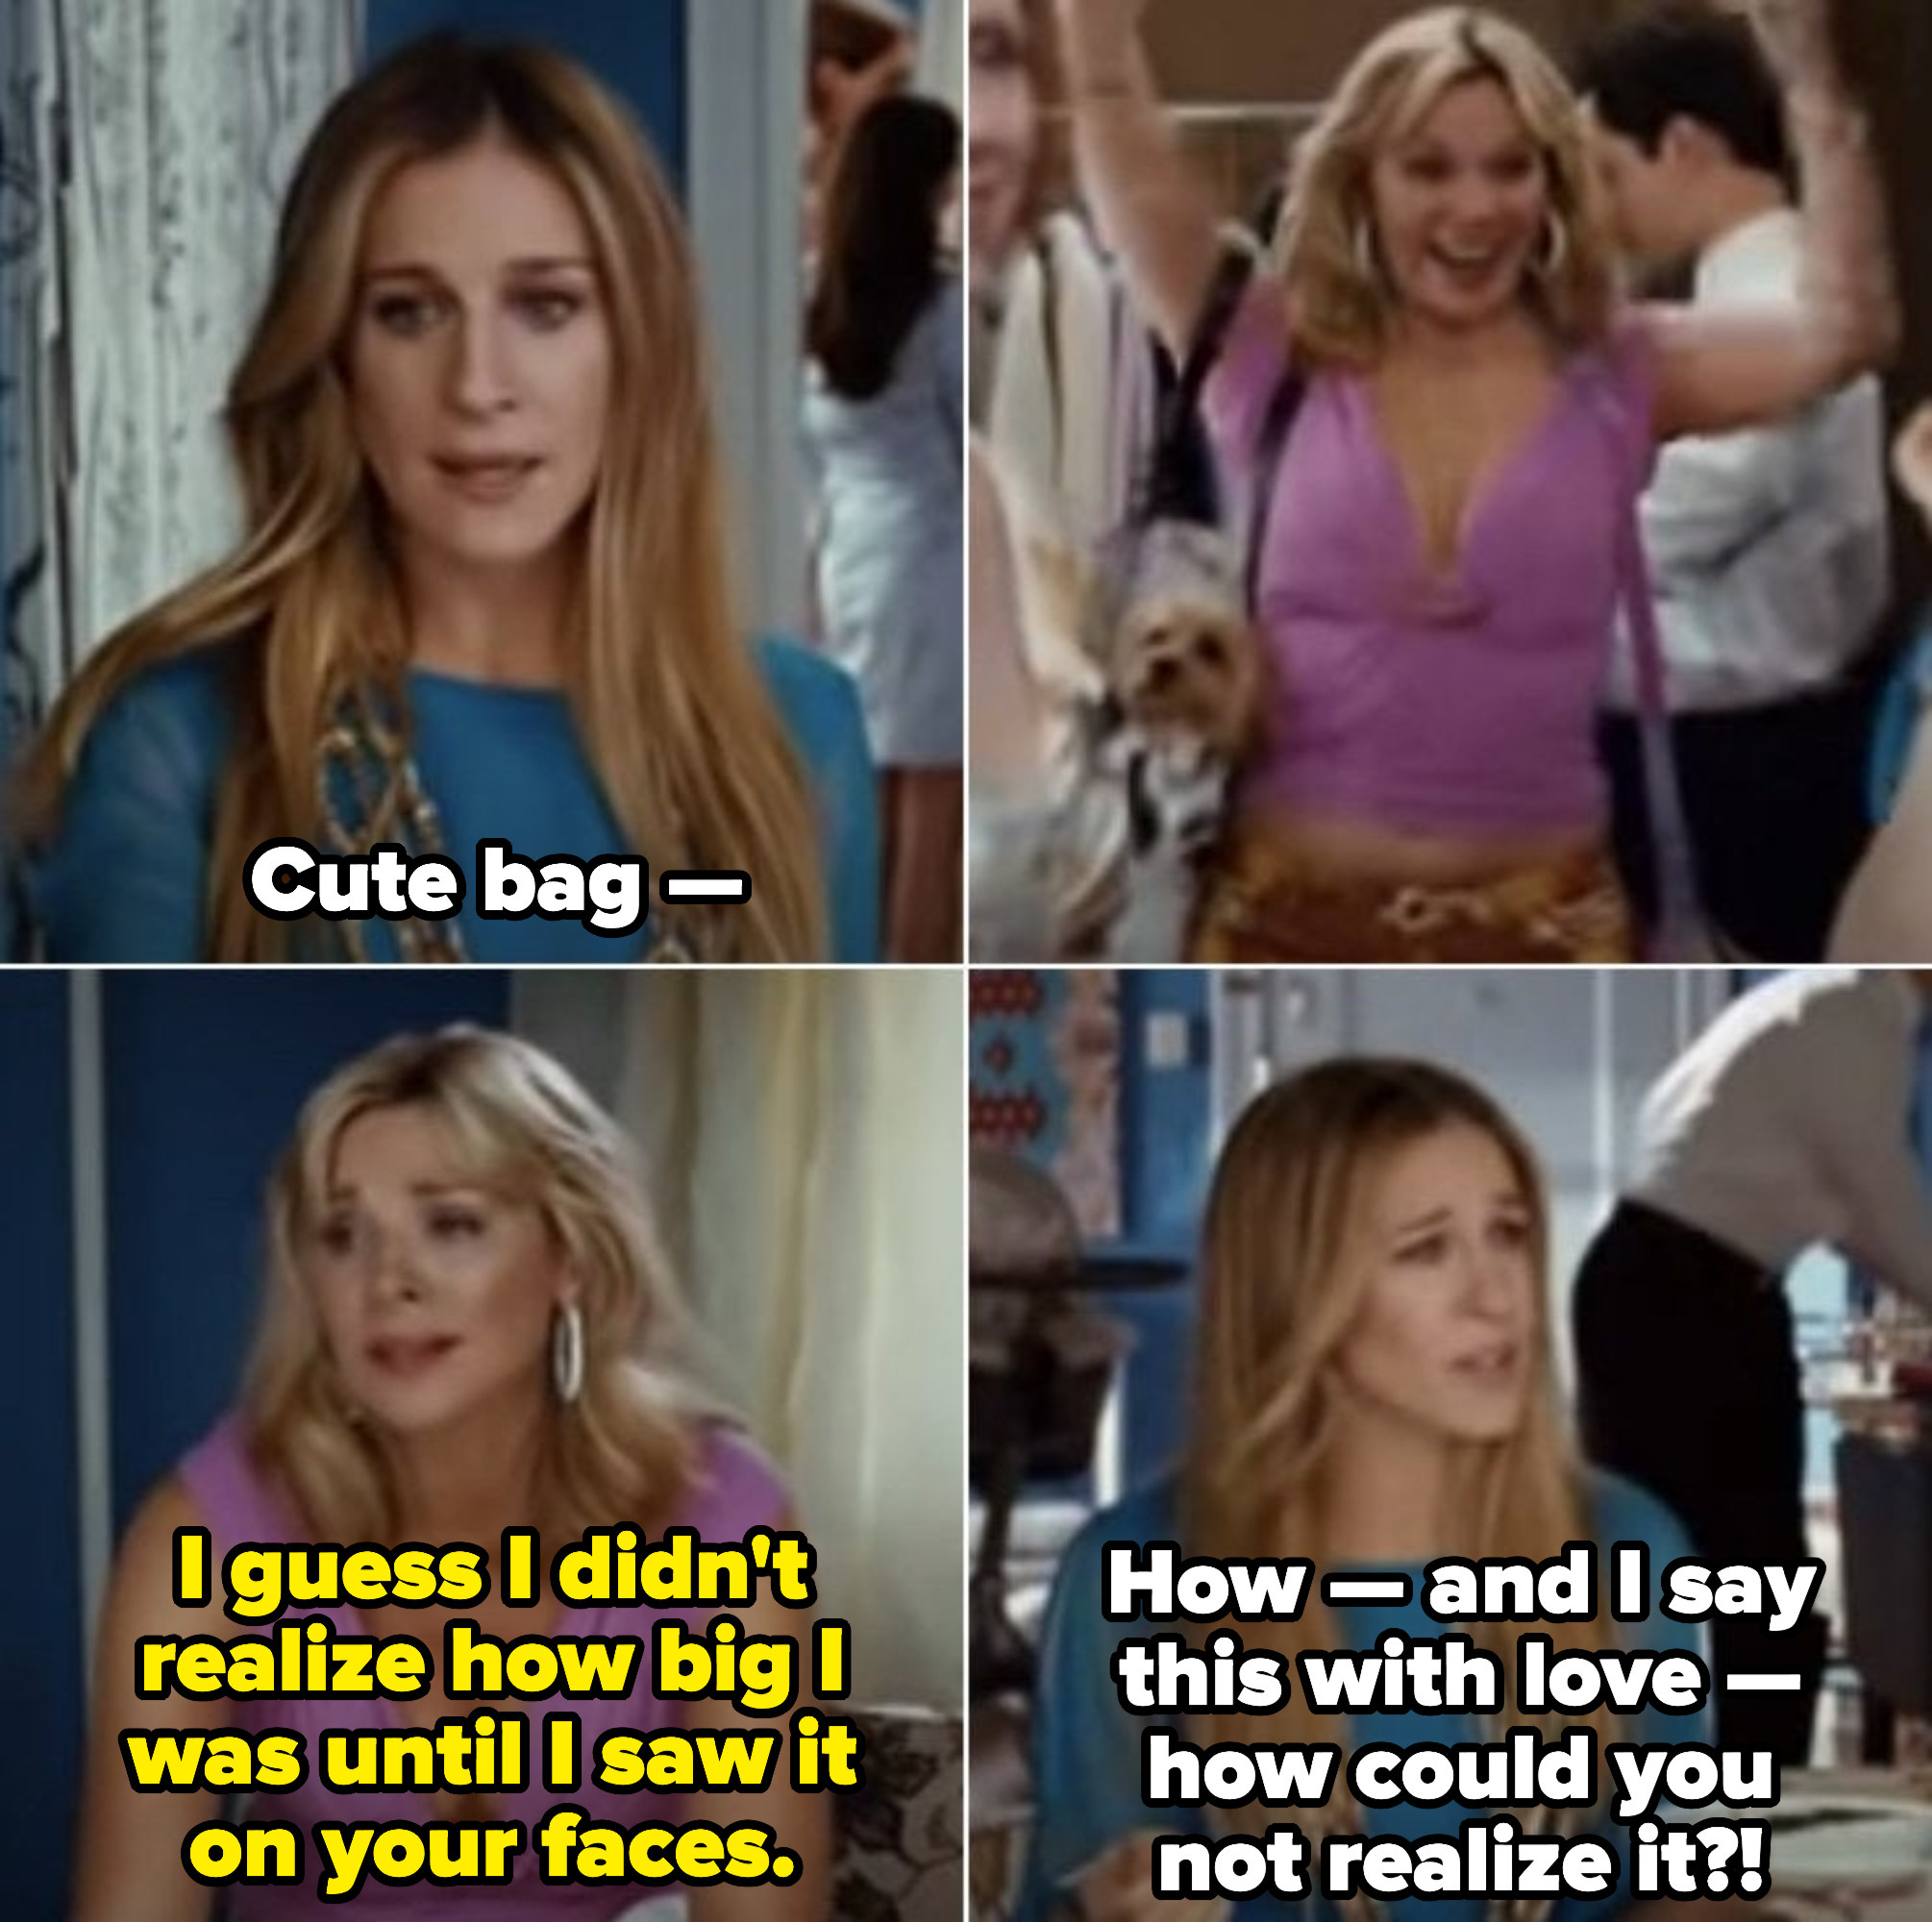 """Samantha: """"I guess I didn't realize how big I was until I saw it on your faces."""" Carrie: """"How -- and I say this with love -- how could you not realize it?!"""""""